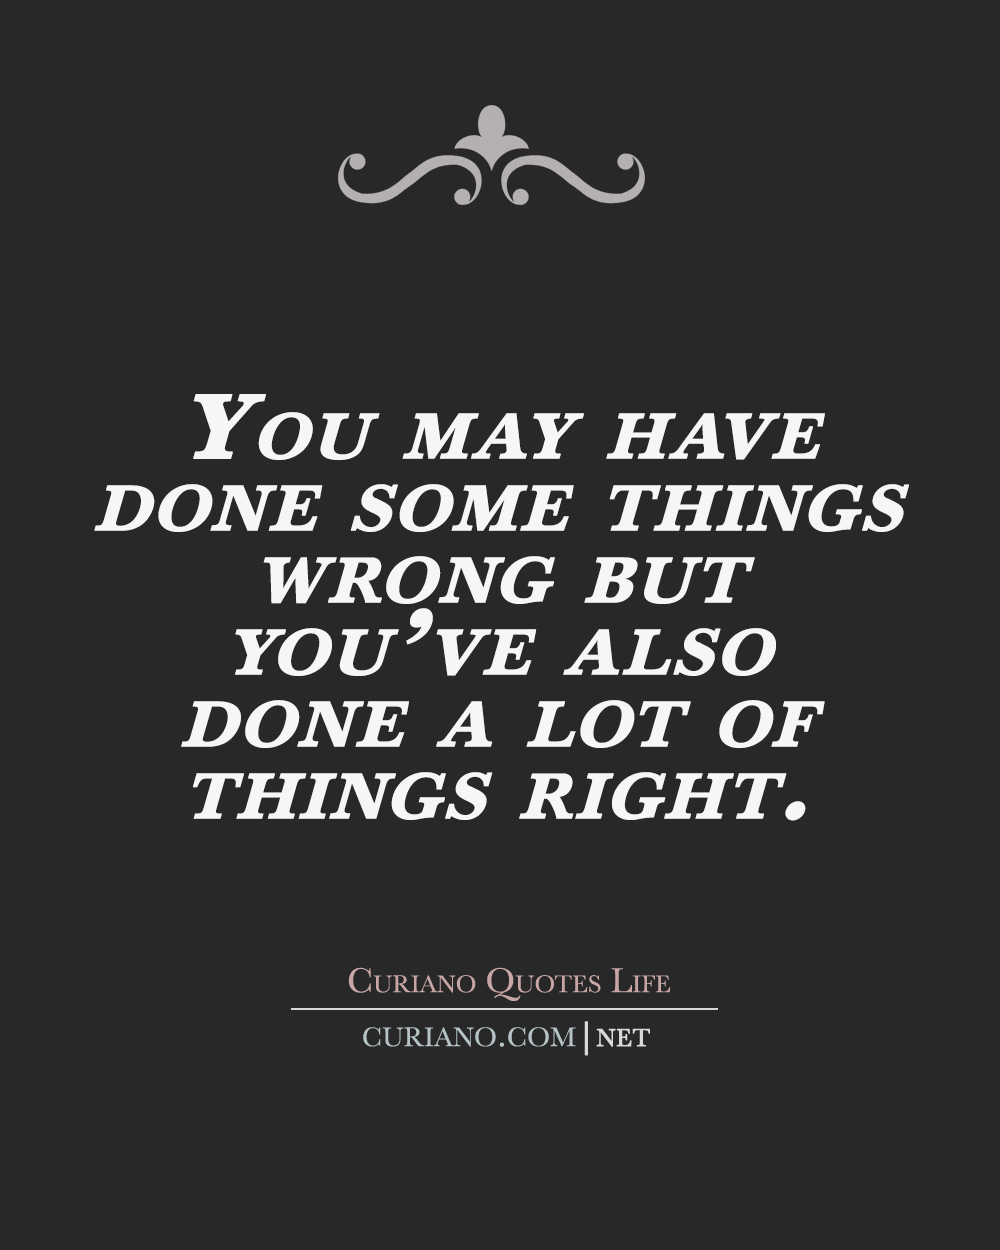 Quotes About Life And Love Curiano Quotes Life  Quote Love Quotes Life Quotes Live Life